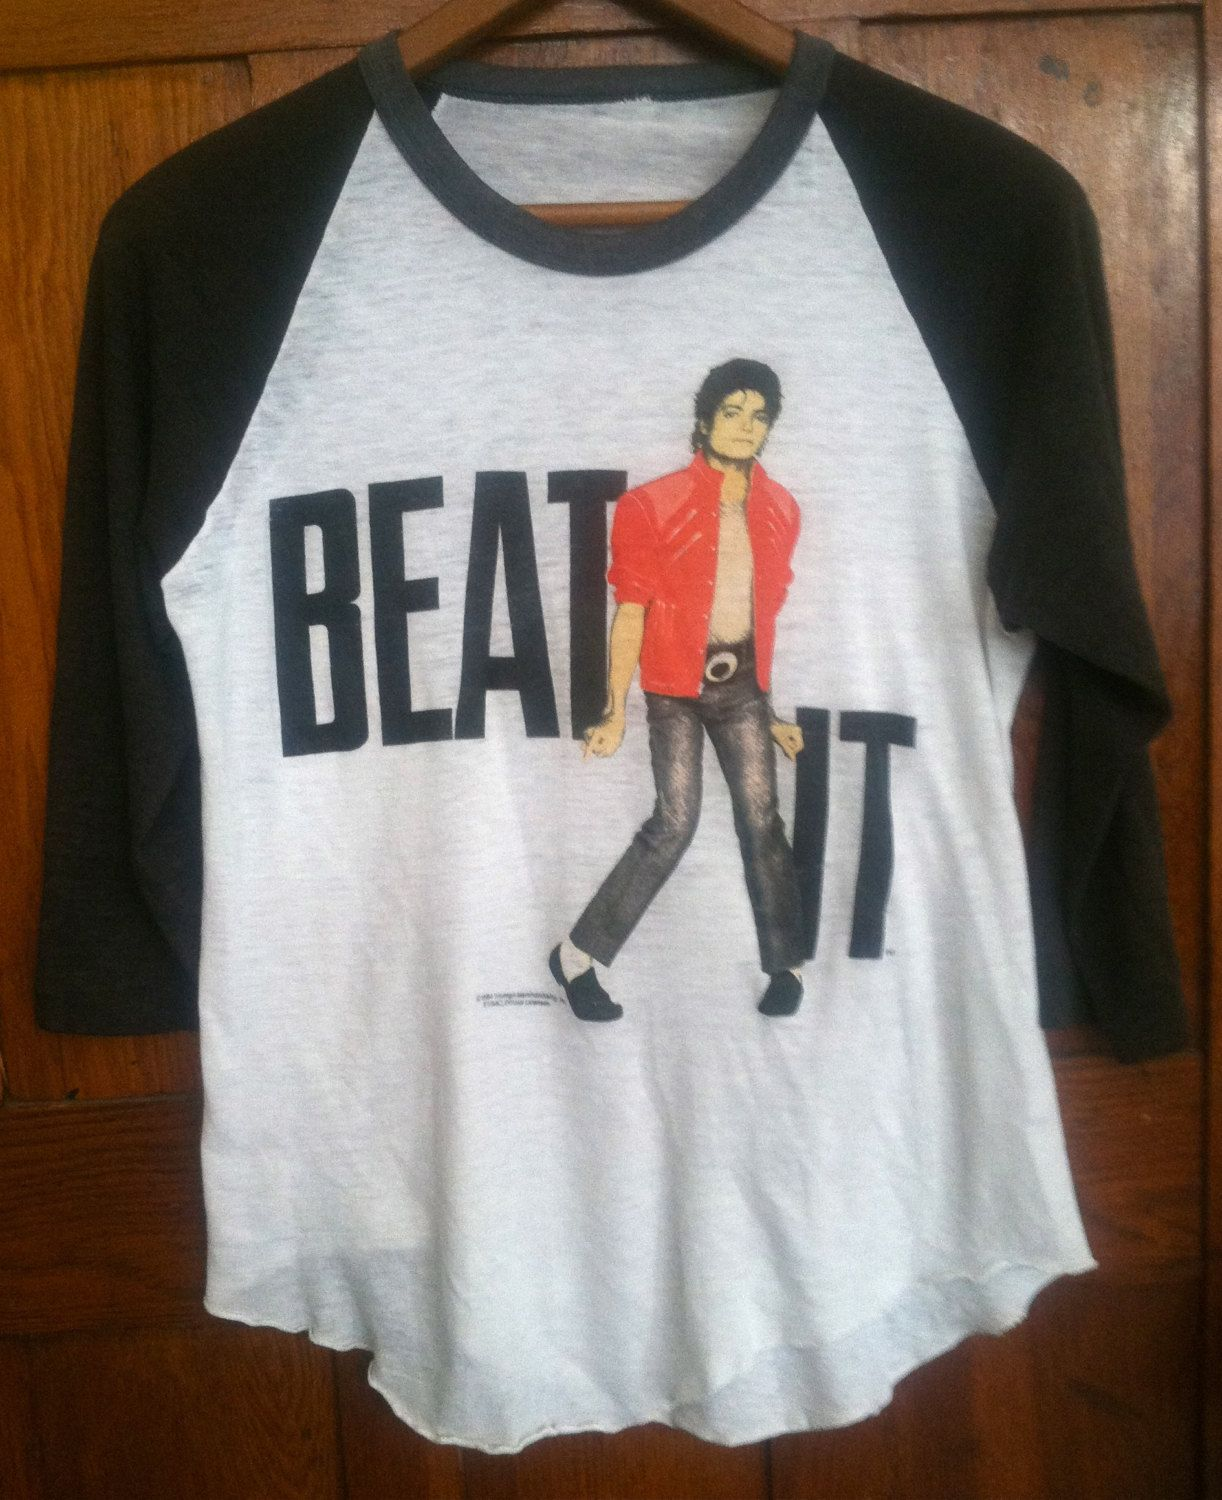 Black t shirt michaels - Vintage Michael Jackson Beat It 1984 3 4 Length Baseball T Shirt Xs Small